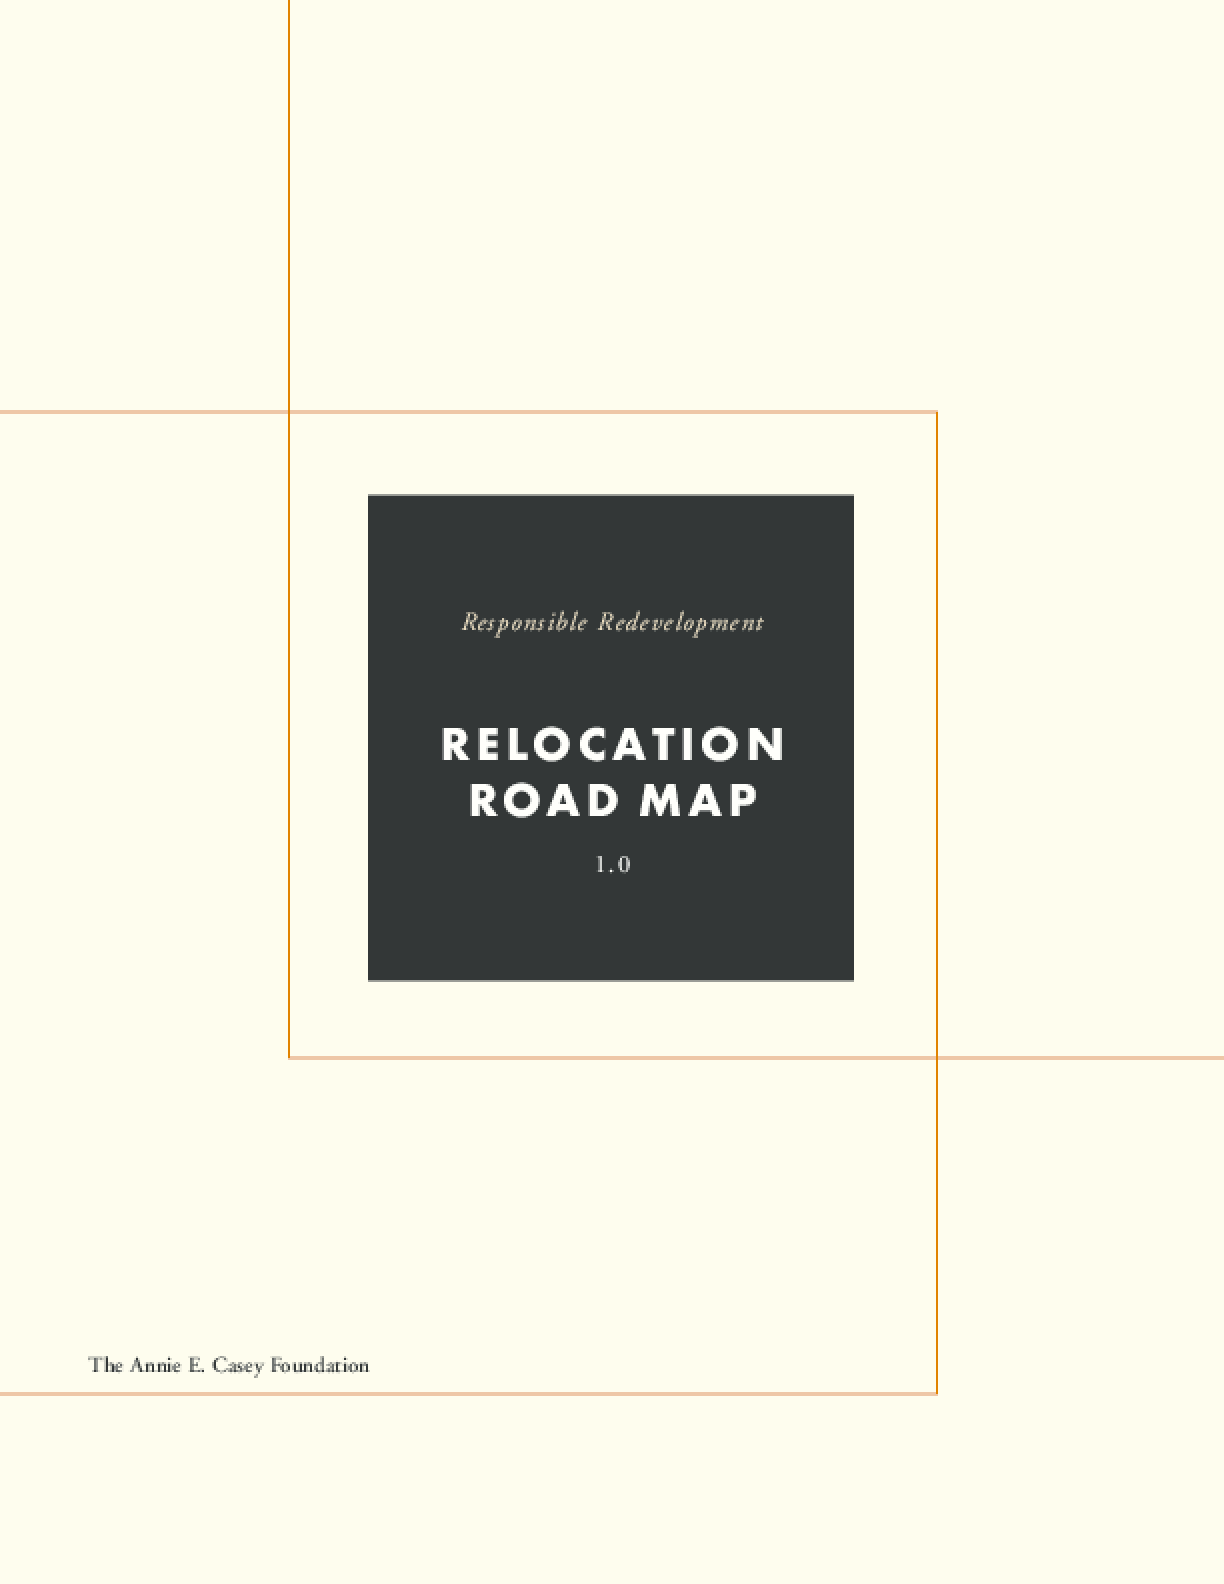 Responsible Redevelopment: Relocation Road Map 1.0